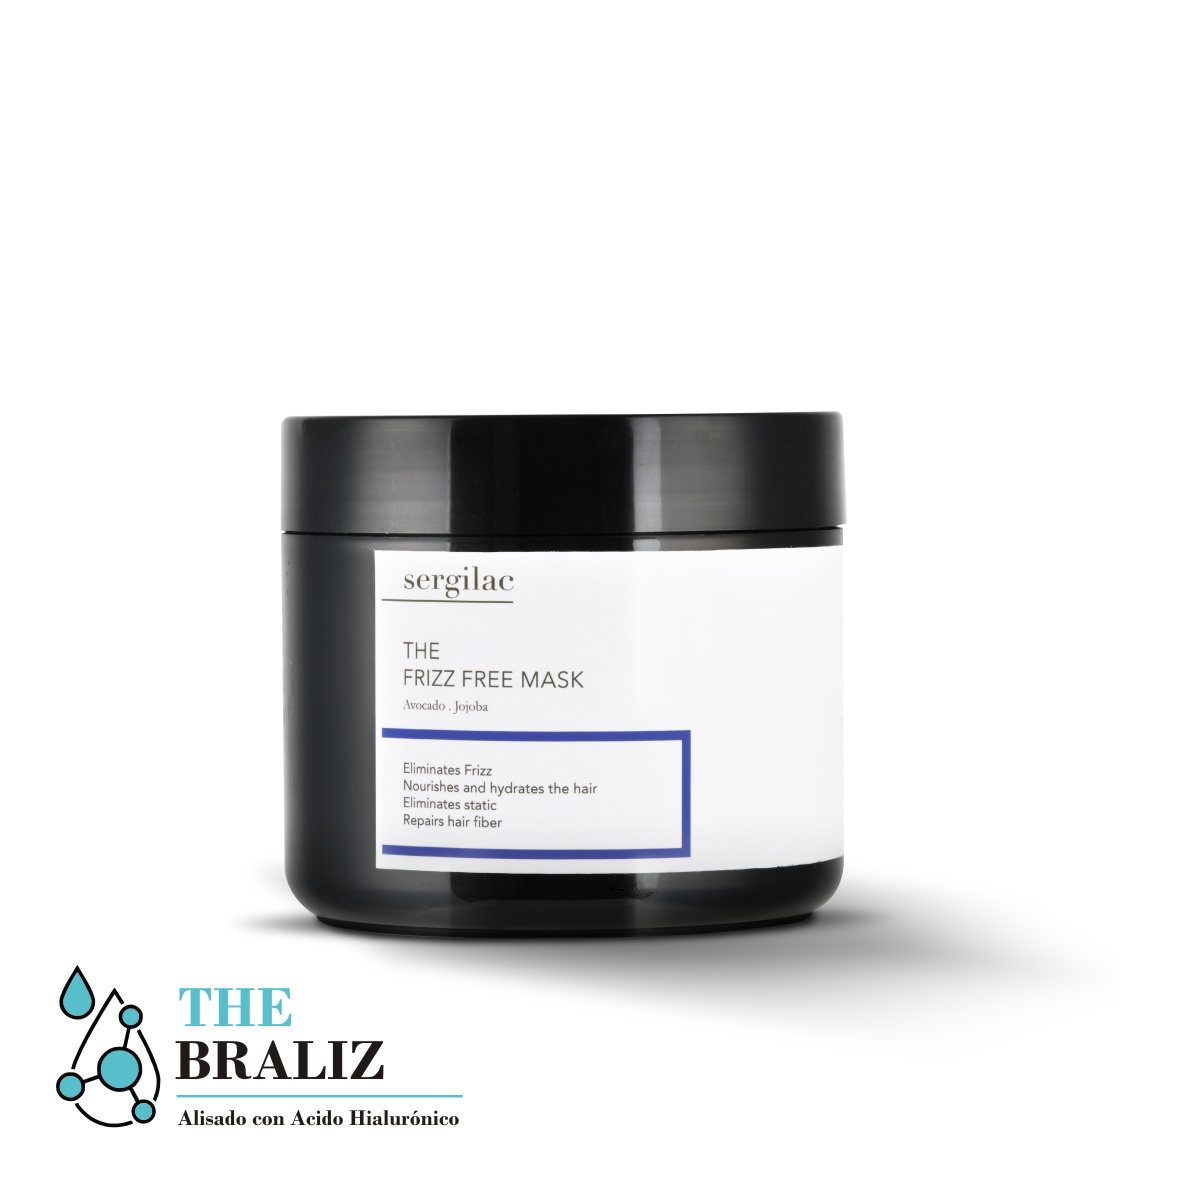 The Frizz Free Mask